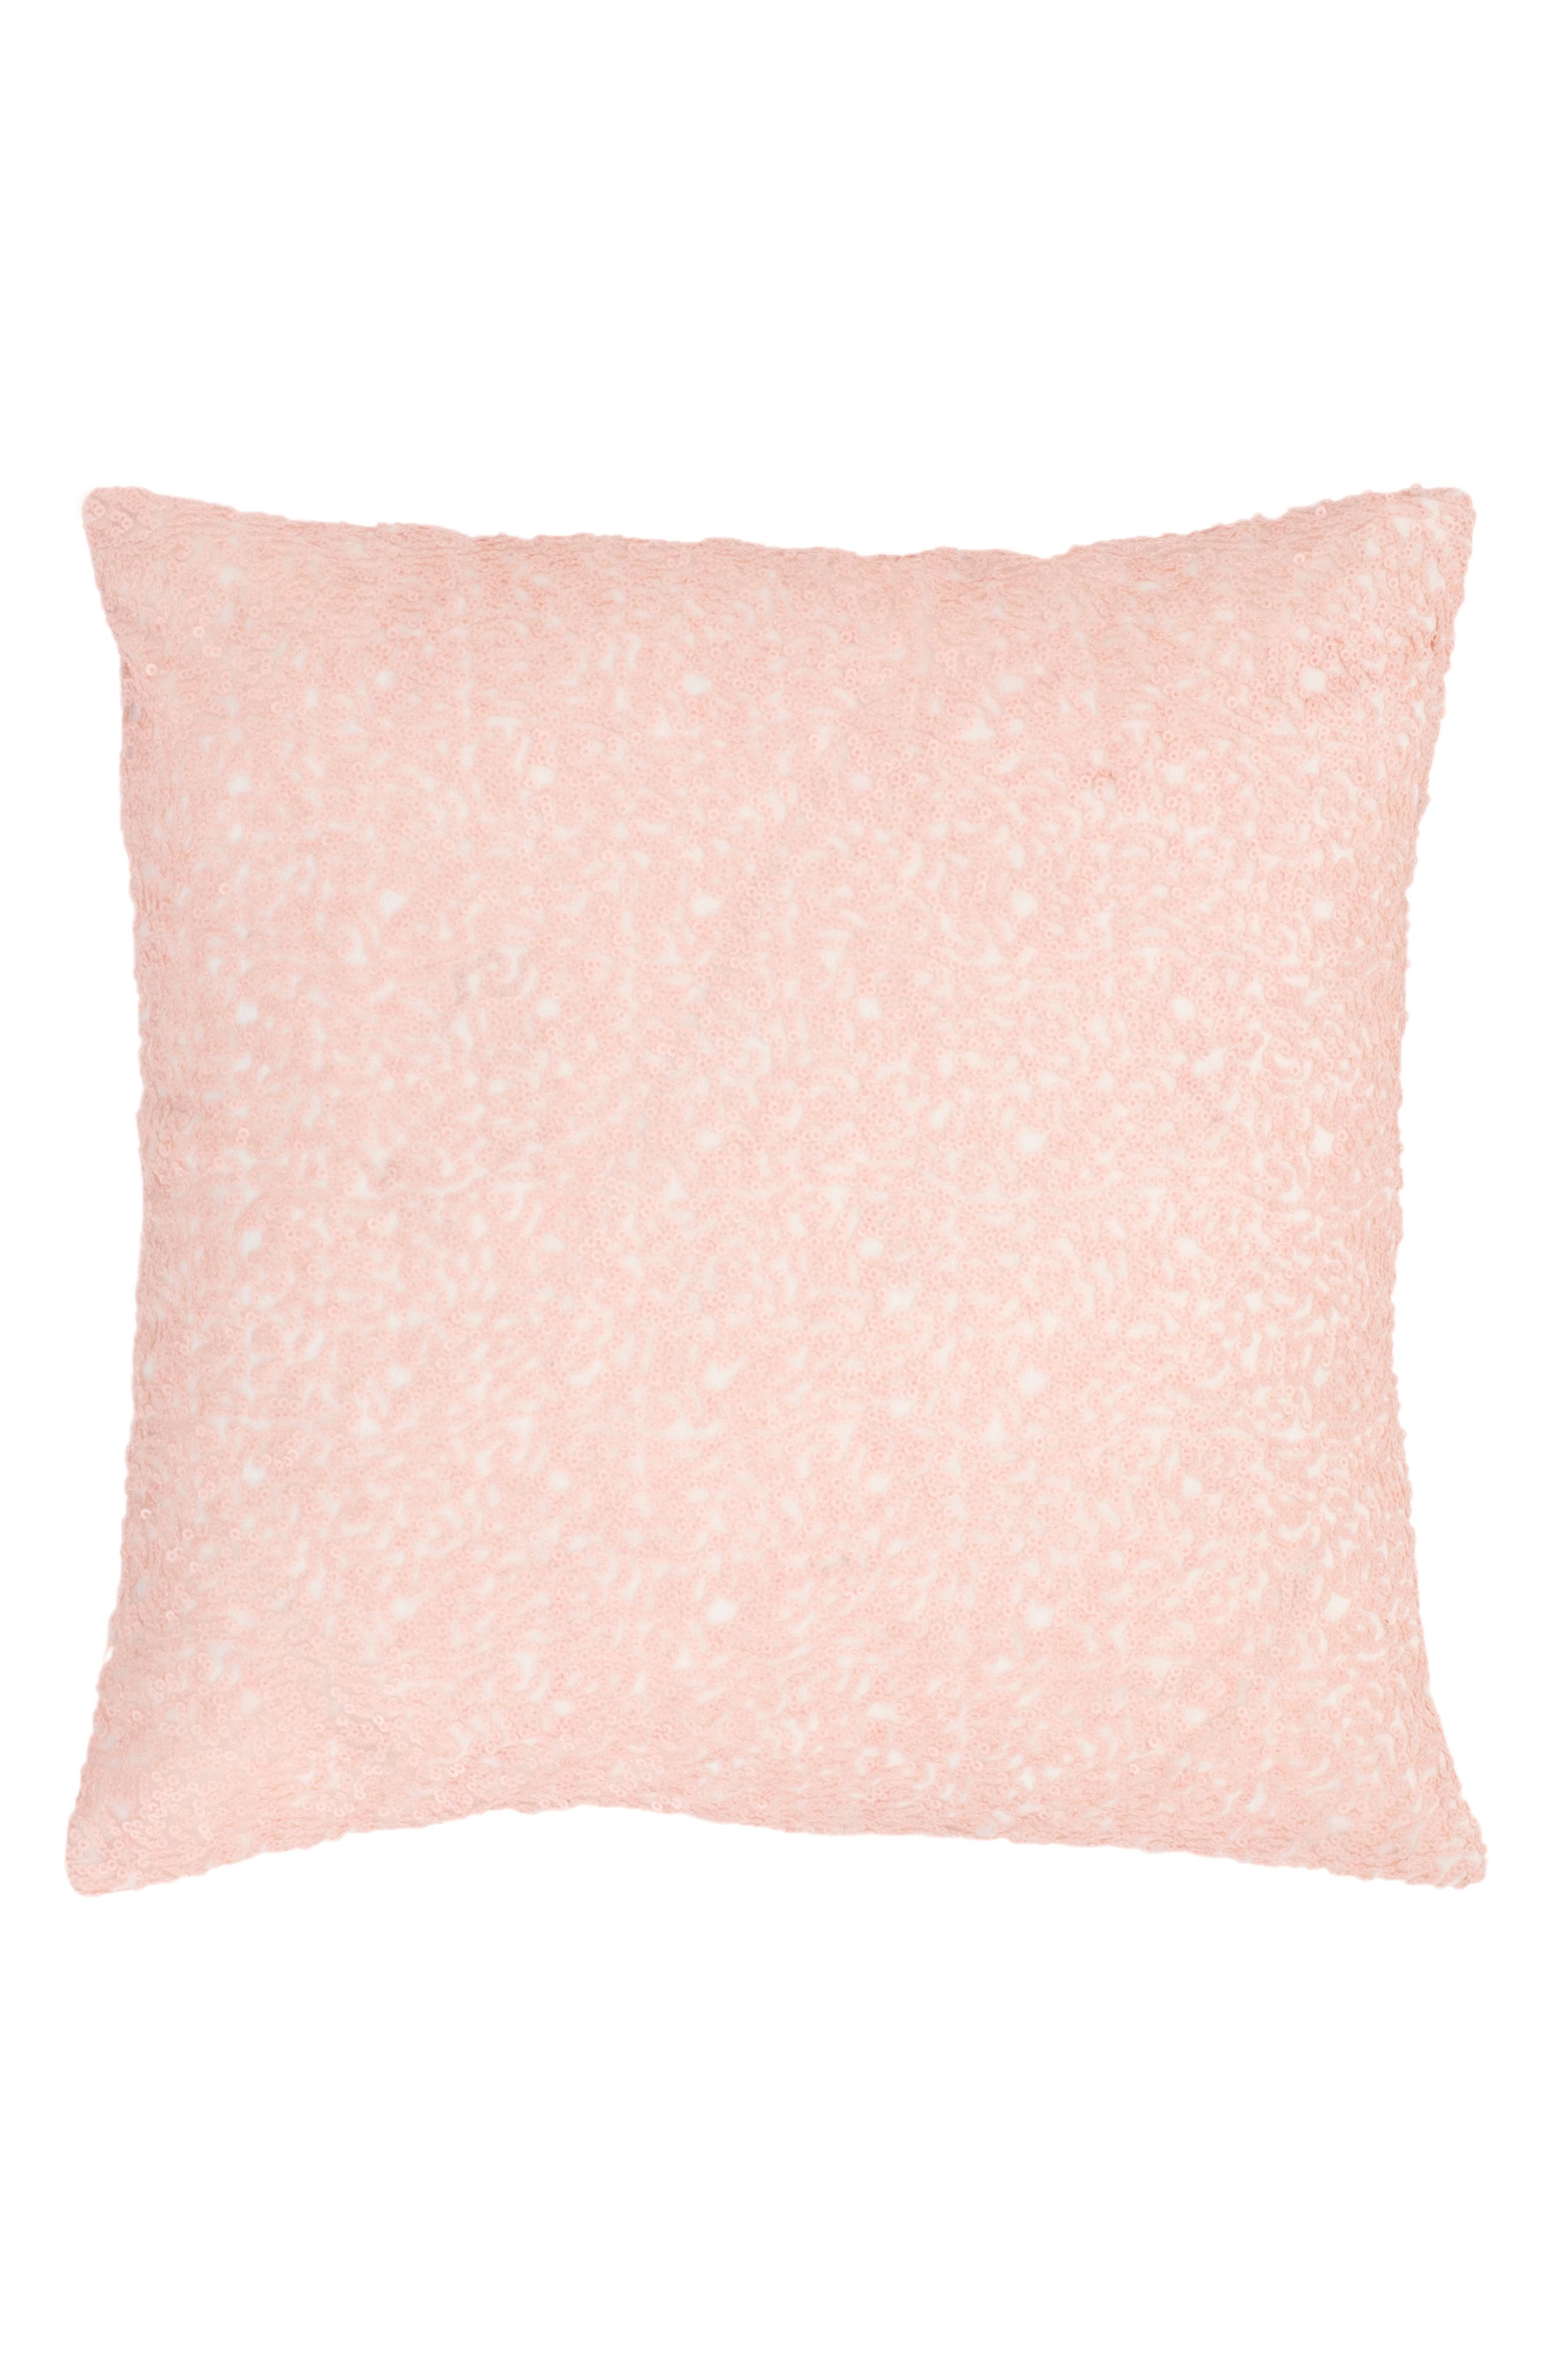 Alternate Image 1 Selected - Pine Cone Hill Glaze Sequin Accent Pillow